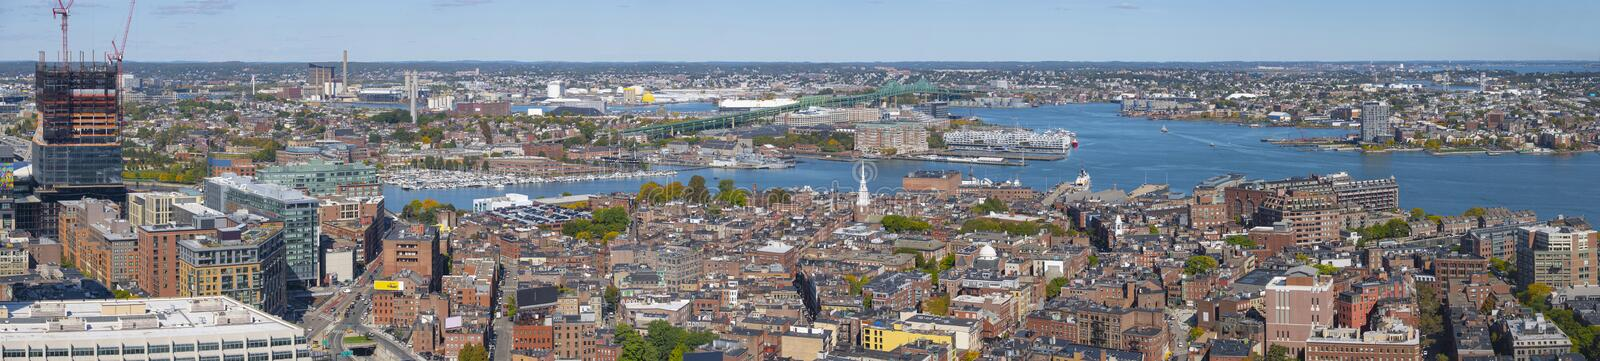 Boston North End and Waterfront, Massachusetts, USA. Boston North End and harbor waterfront aerial view panorama, Boston, Massachusetts, MA, USA royalty free stock photography